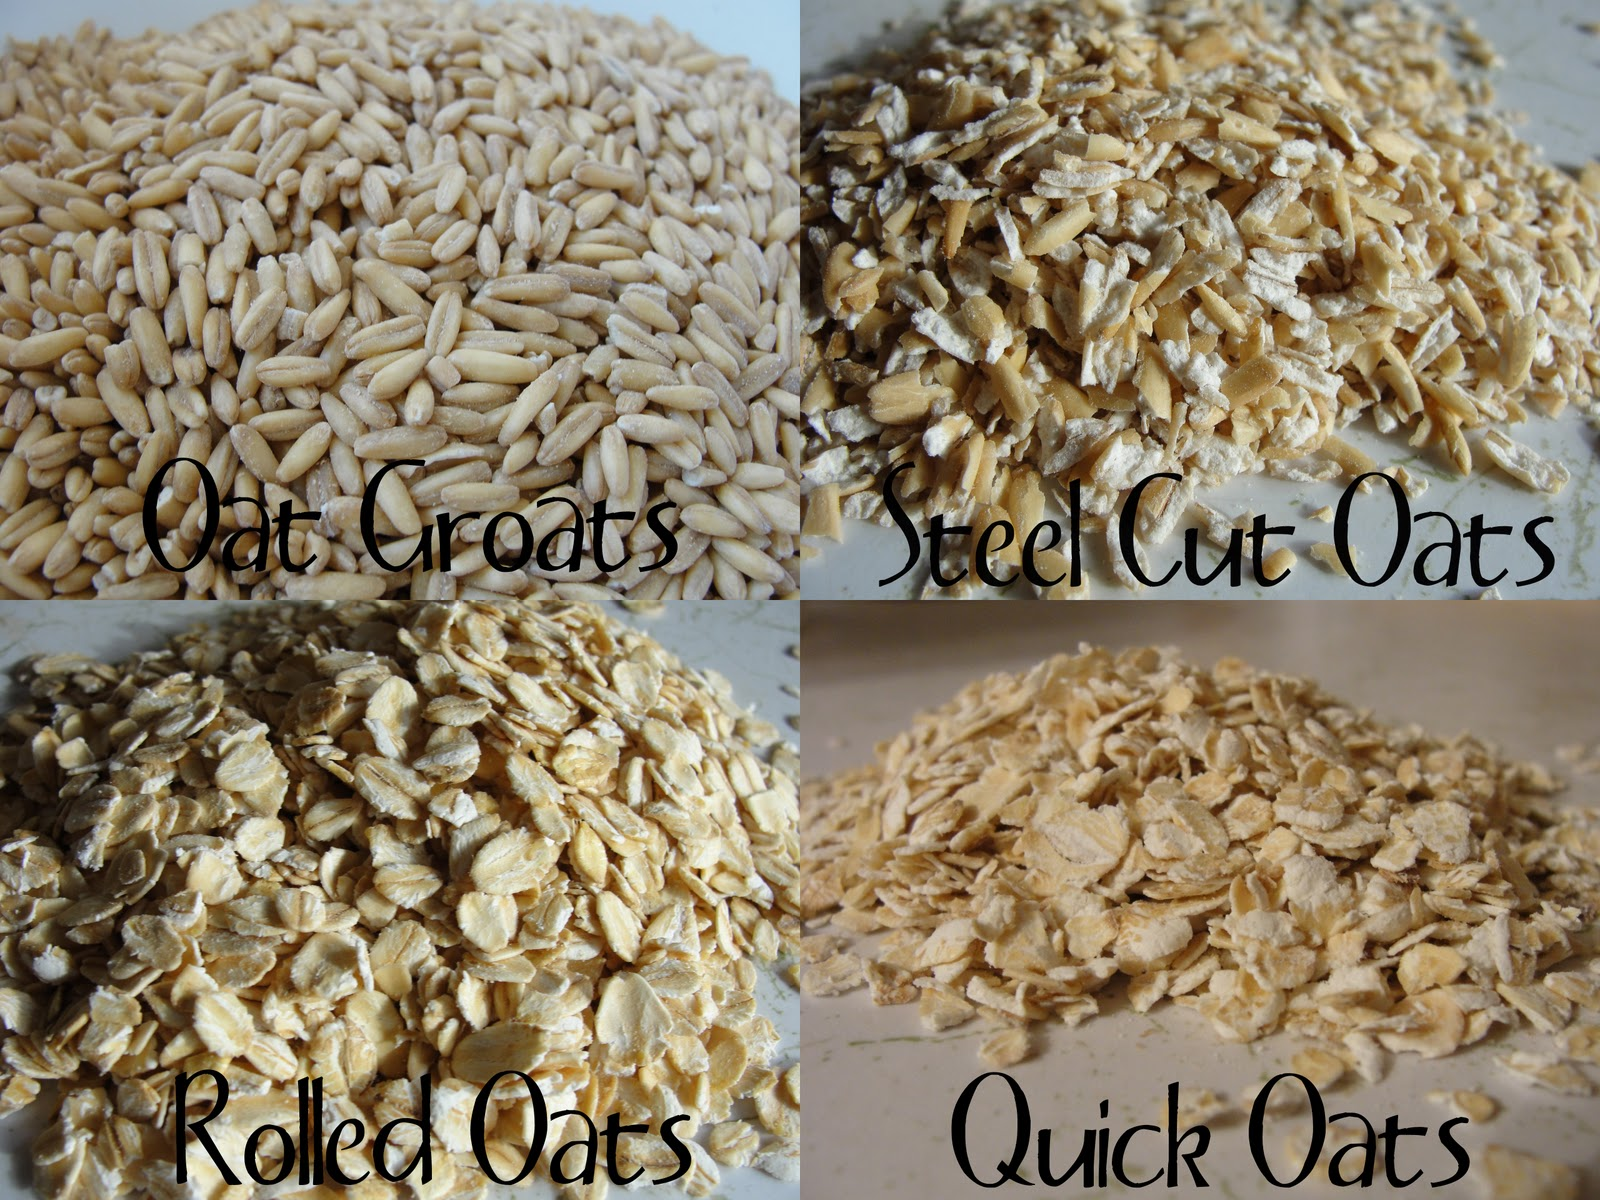 Whole Foods  Rolled Oats